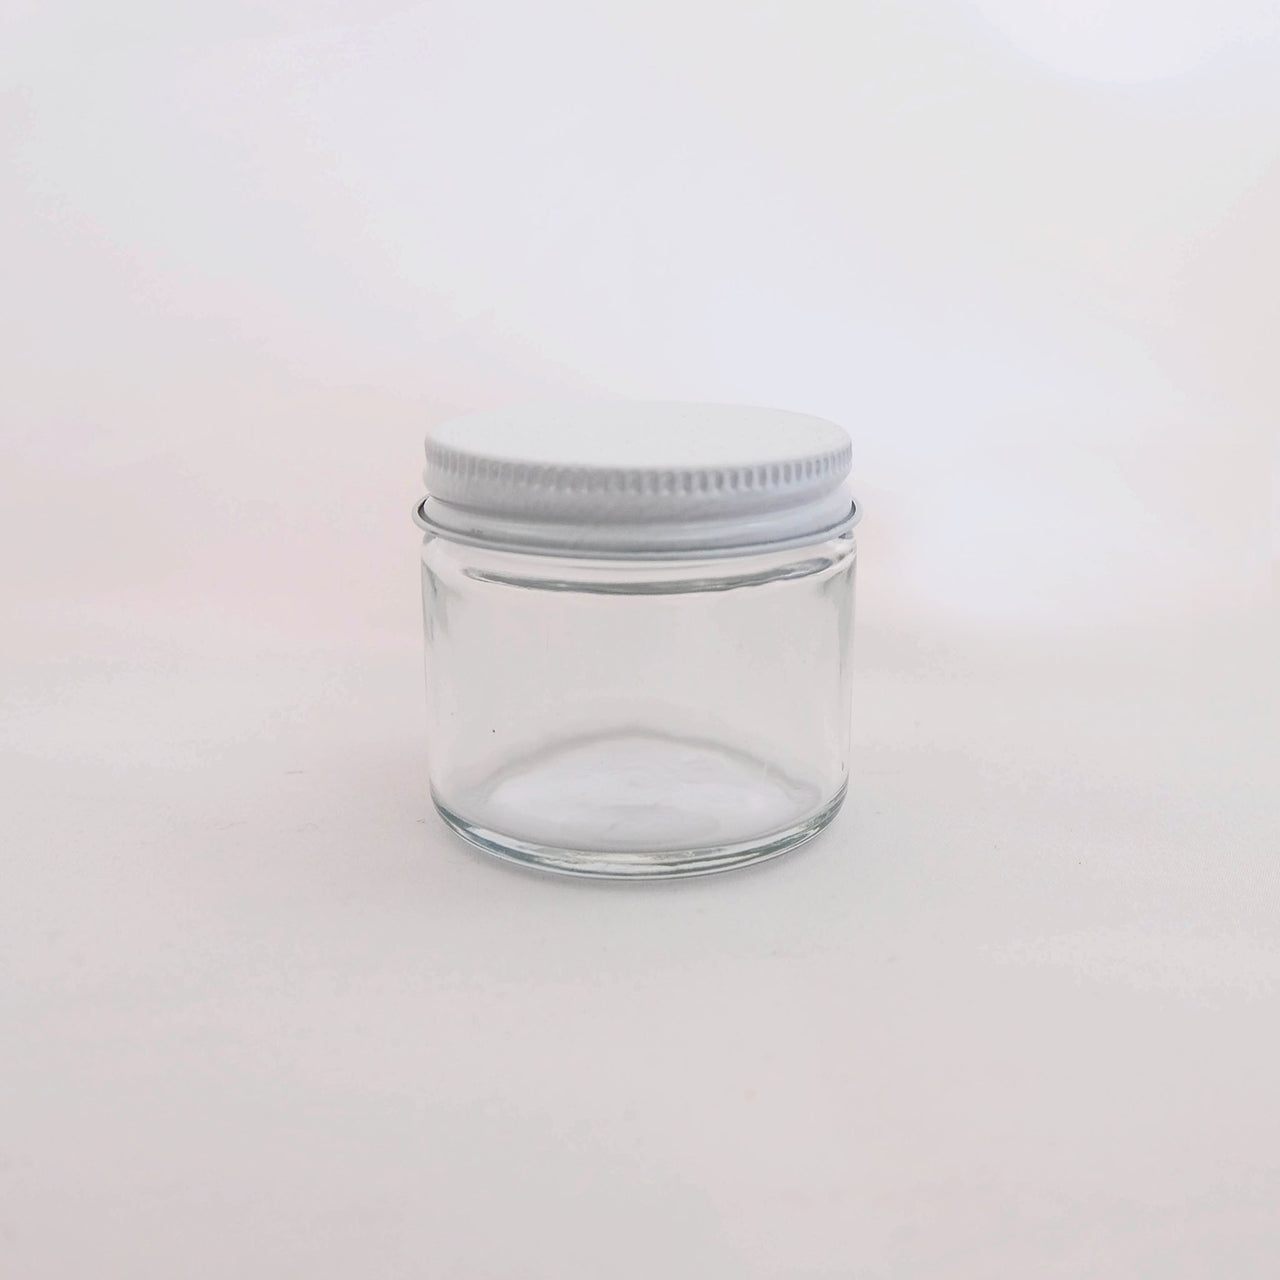 2 oz. Glass Jar with White Metal Screw Lid